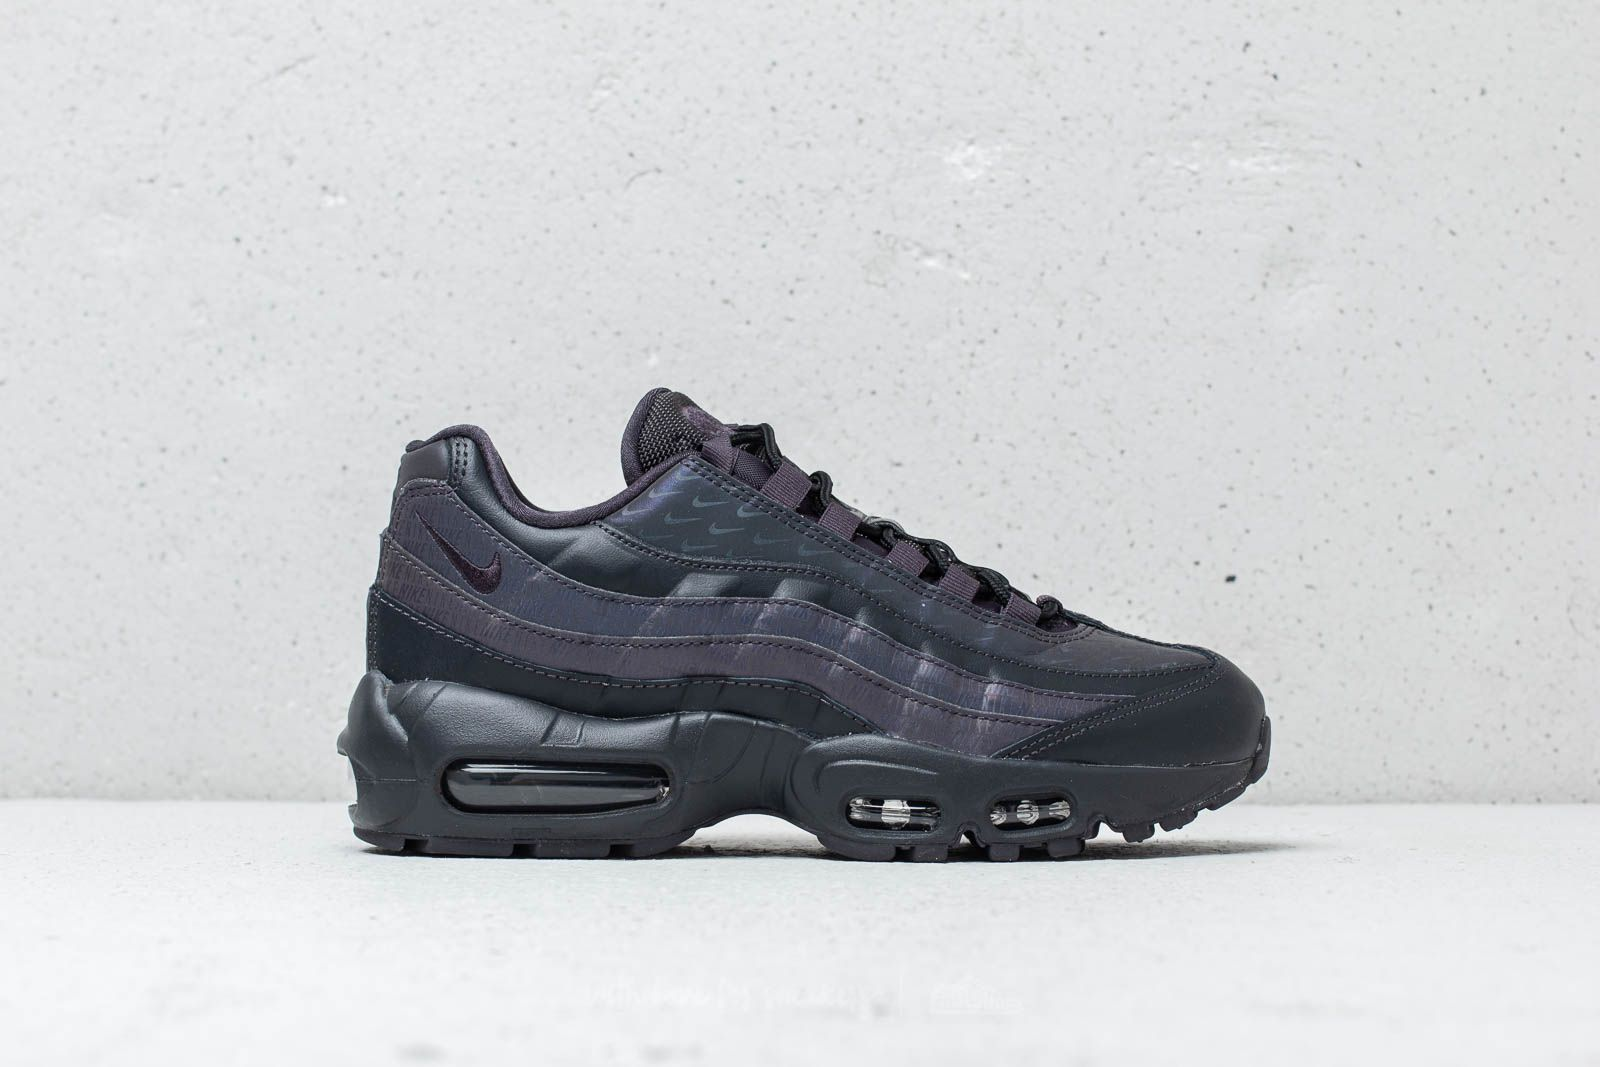 size 40 310e1 4b2fd Nike Wmns Air Max 95 LX Oil Grey Oil Grey-Oil Grey at a